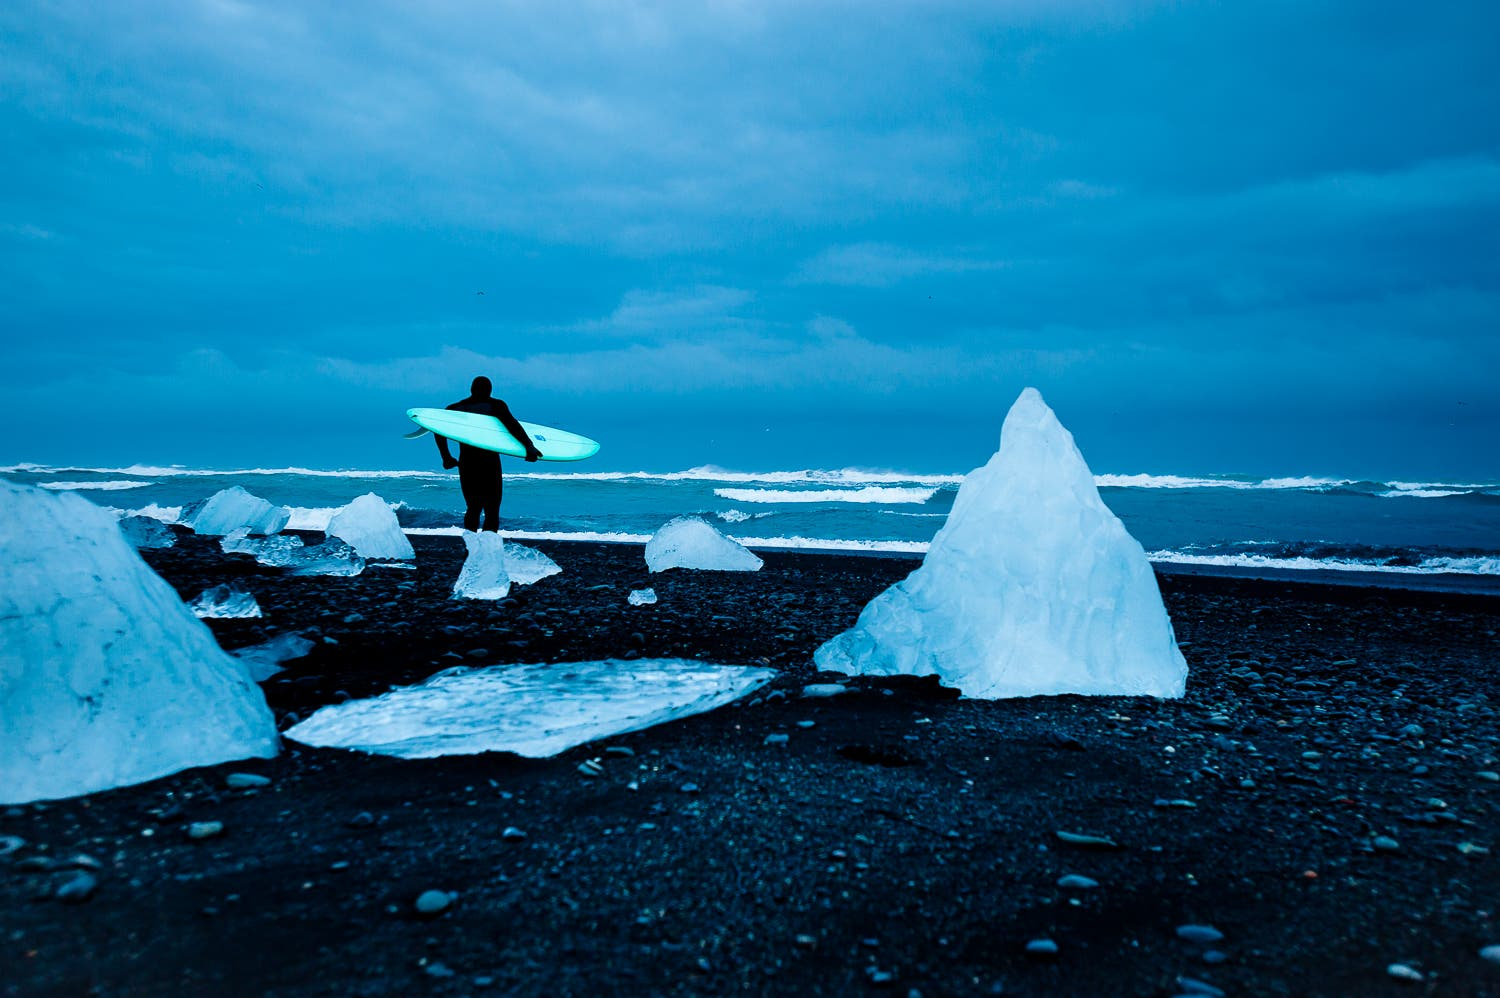 Chris Burkard Shares His Ideas on Creating Interesting Photos